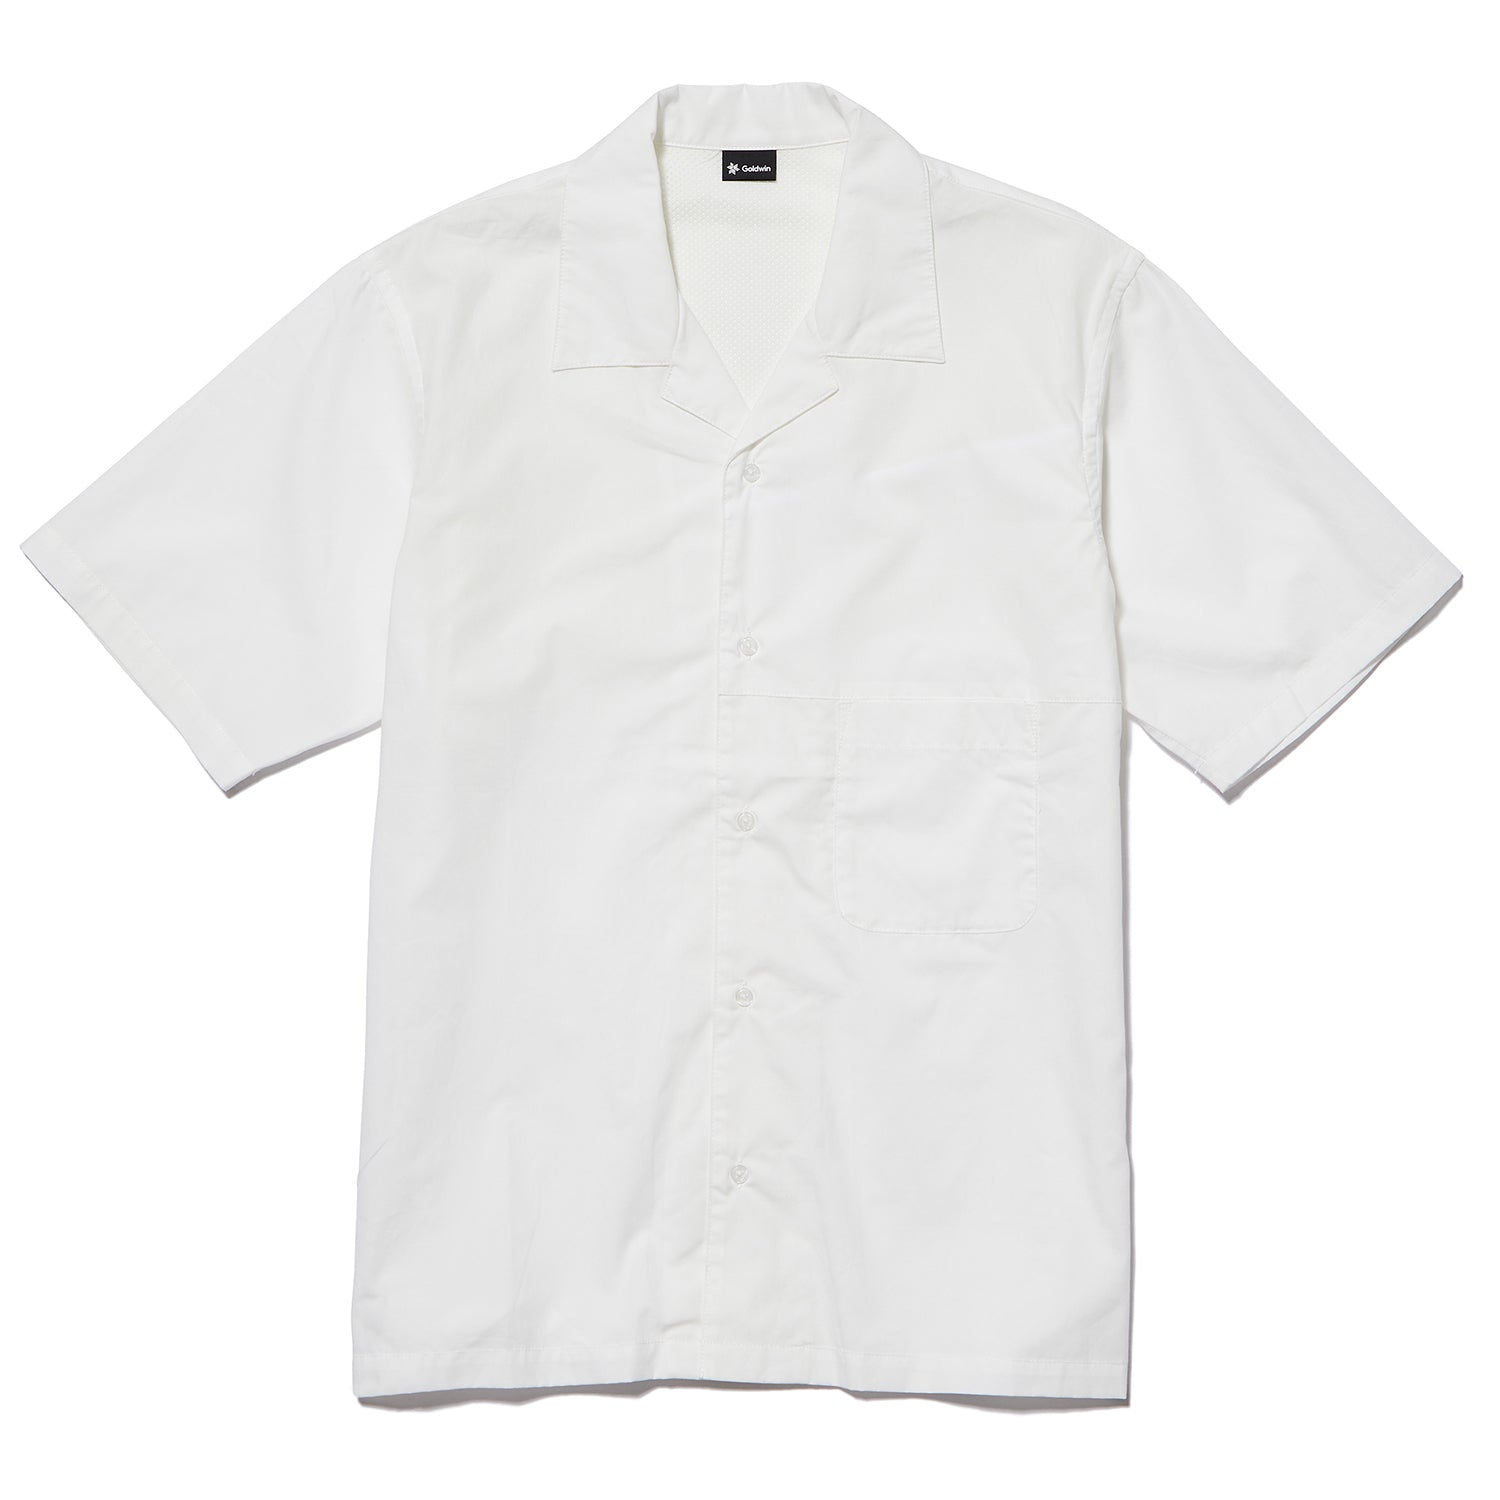 OPEN COLLAR S/S SHIRT